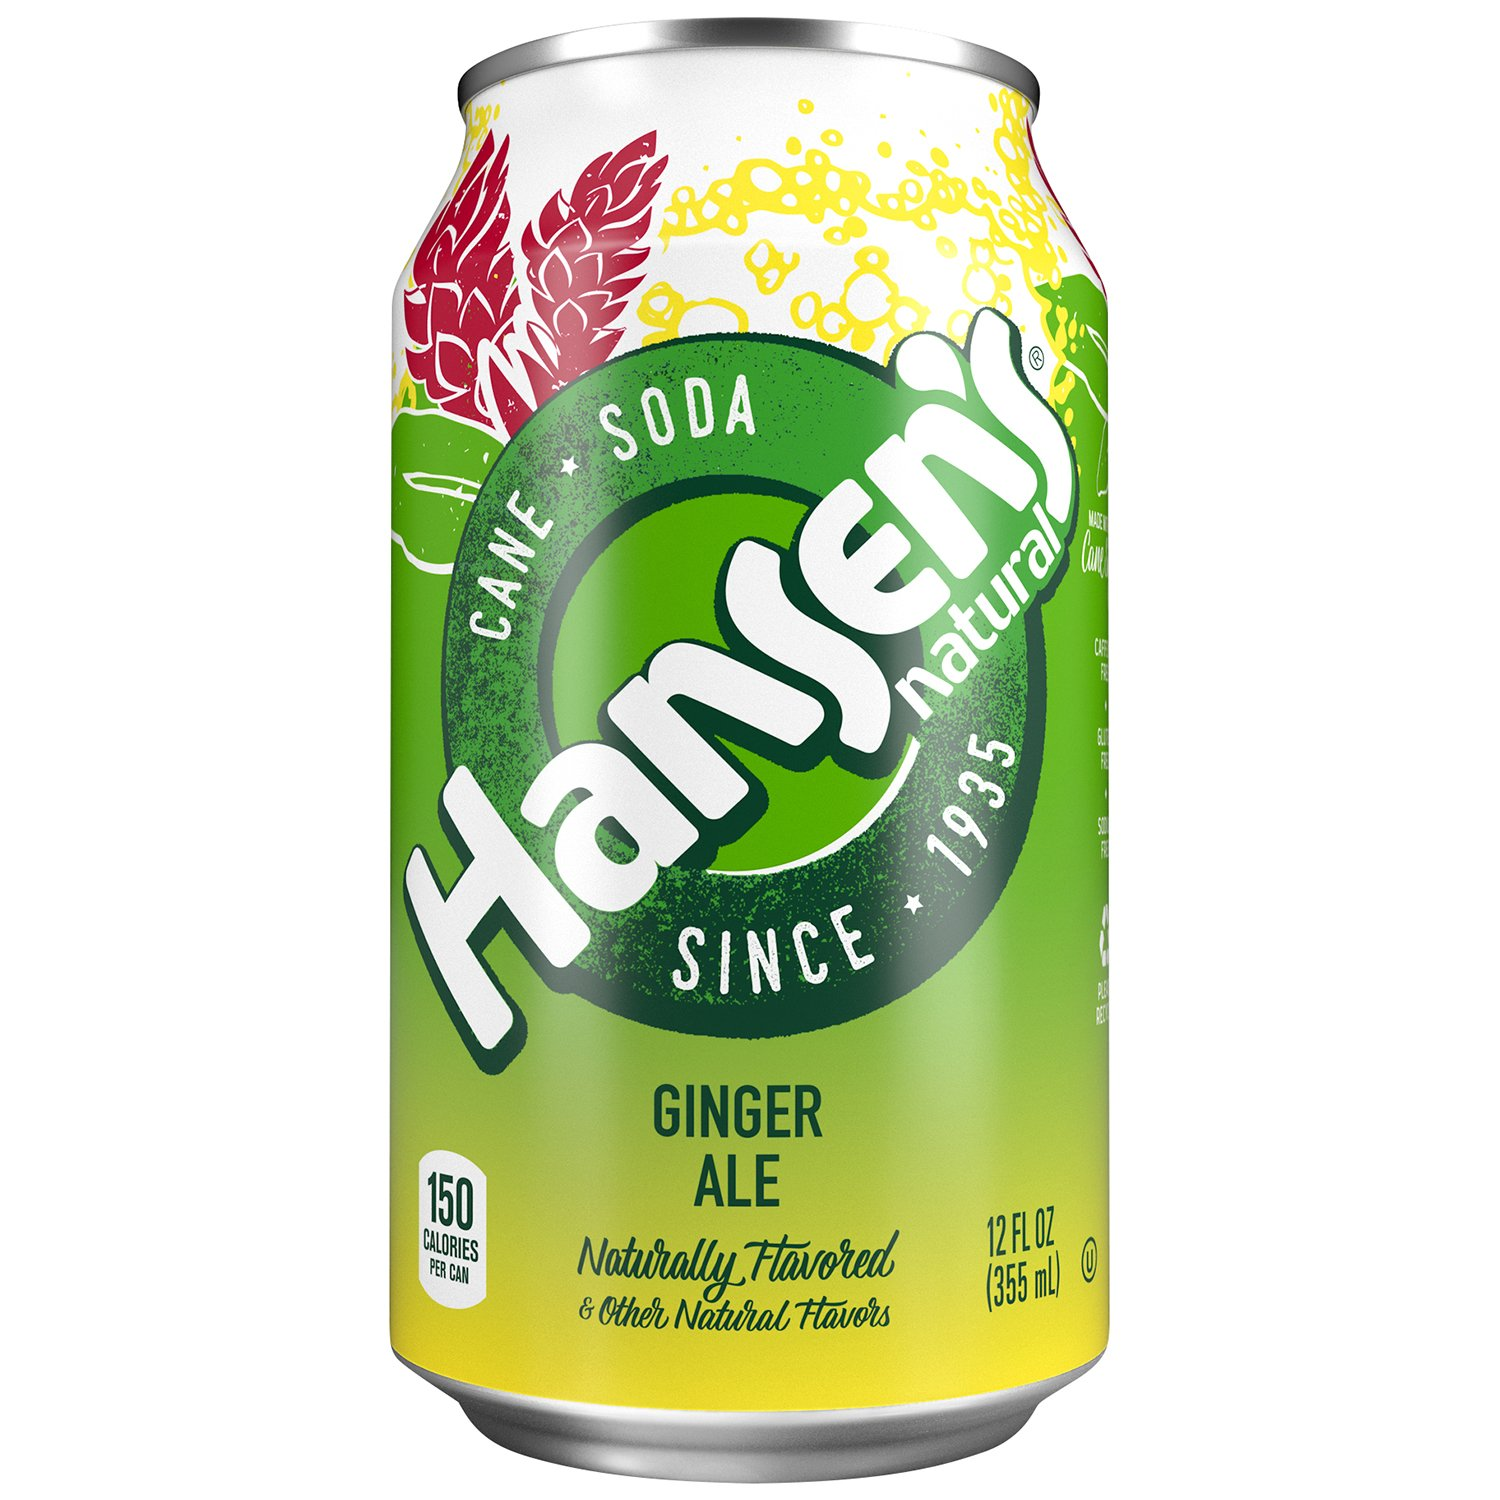 Hansen's Cane Soda, Ginger Ale, 12 Ounce (Pack of 24)